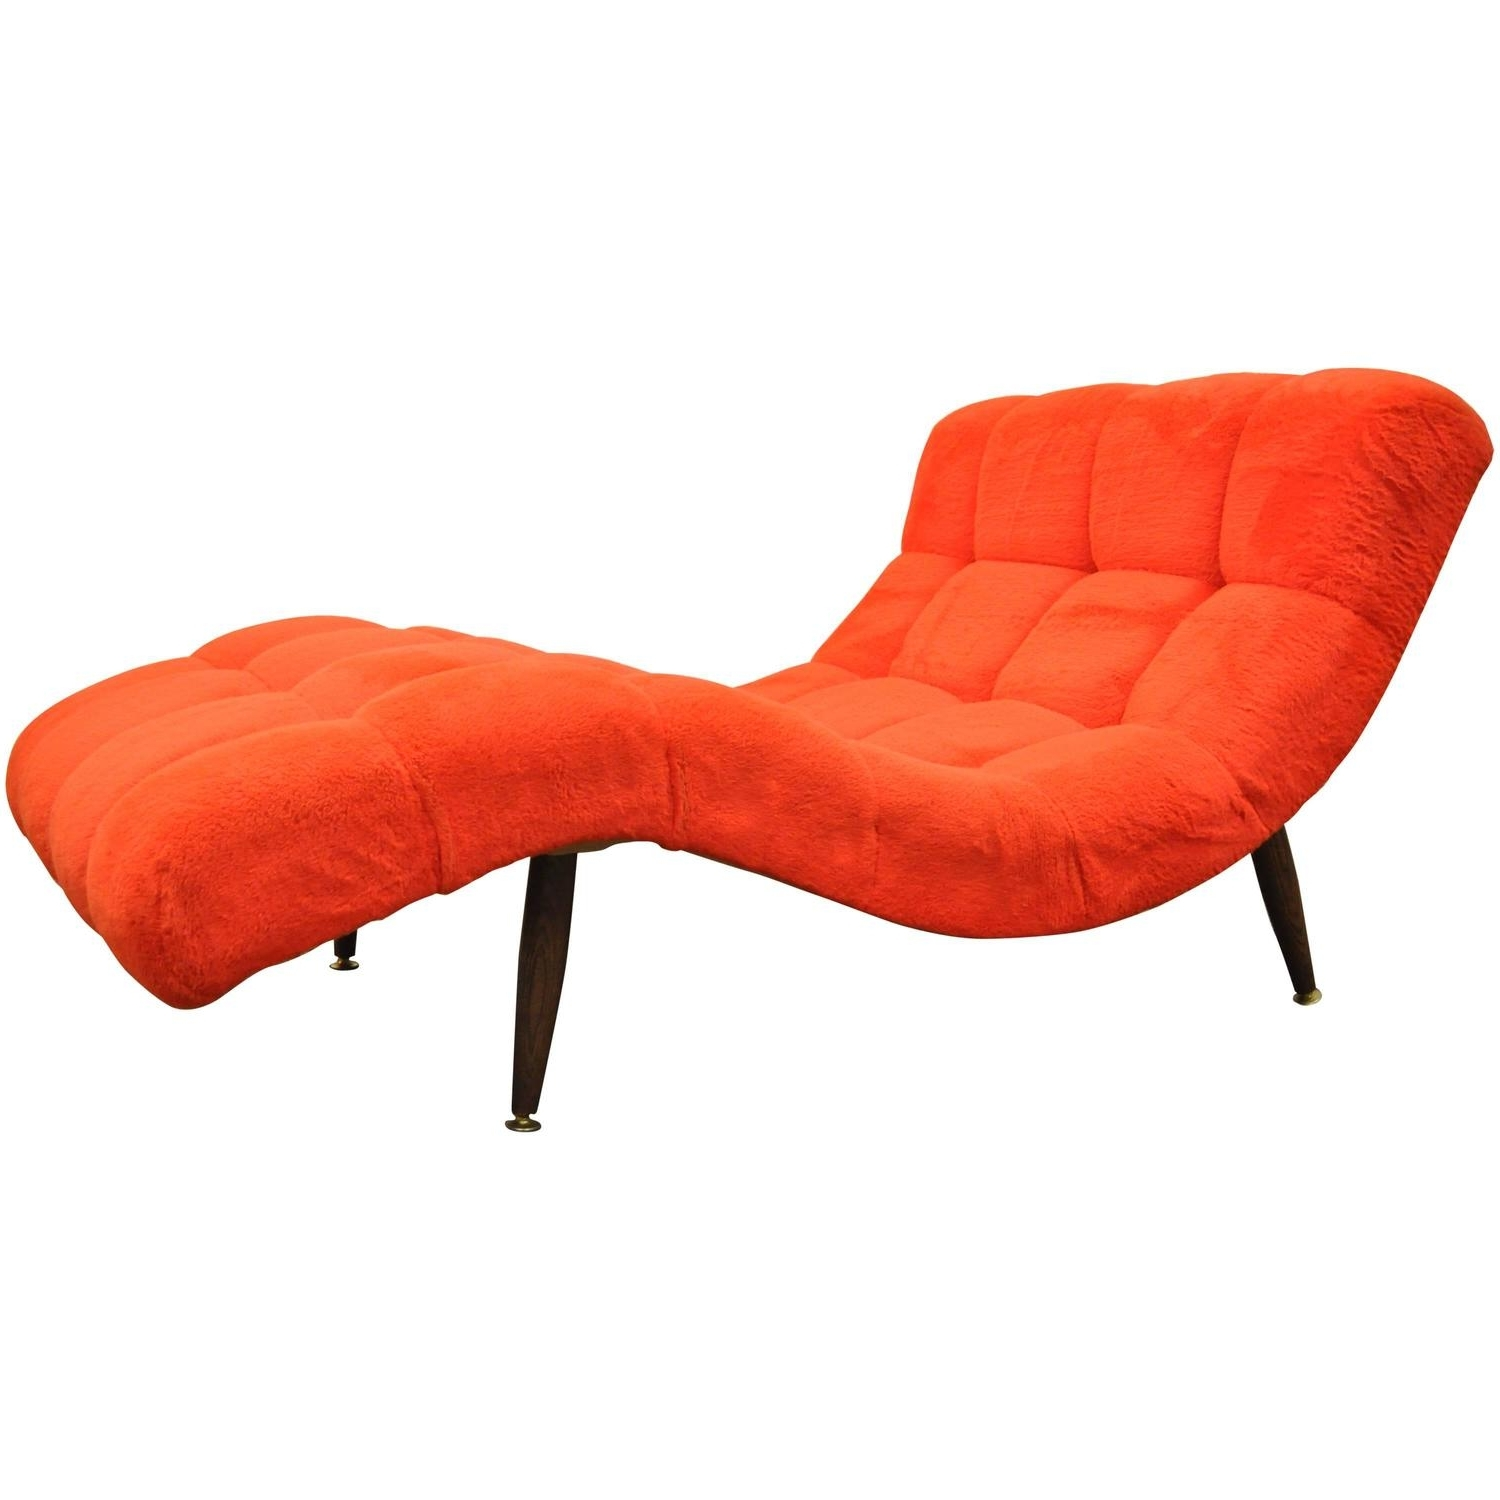 Chaise Lounge Chair Modern 15 Collection Of Mid Century Modern Chaise Lounges